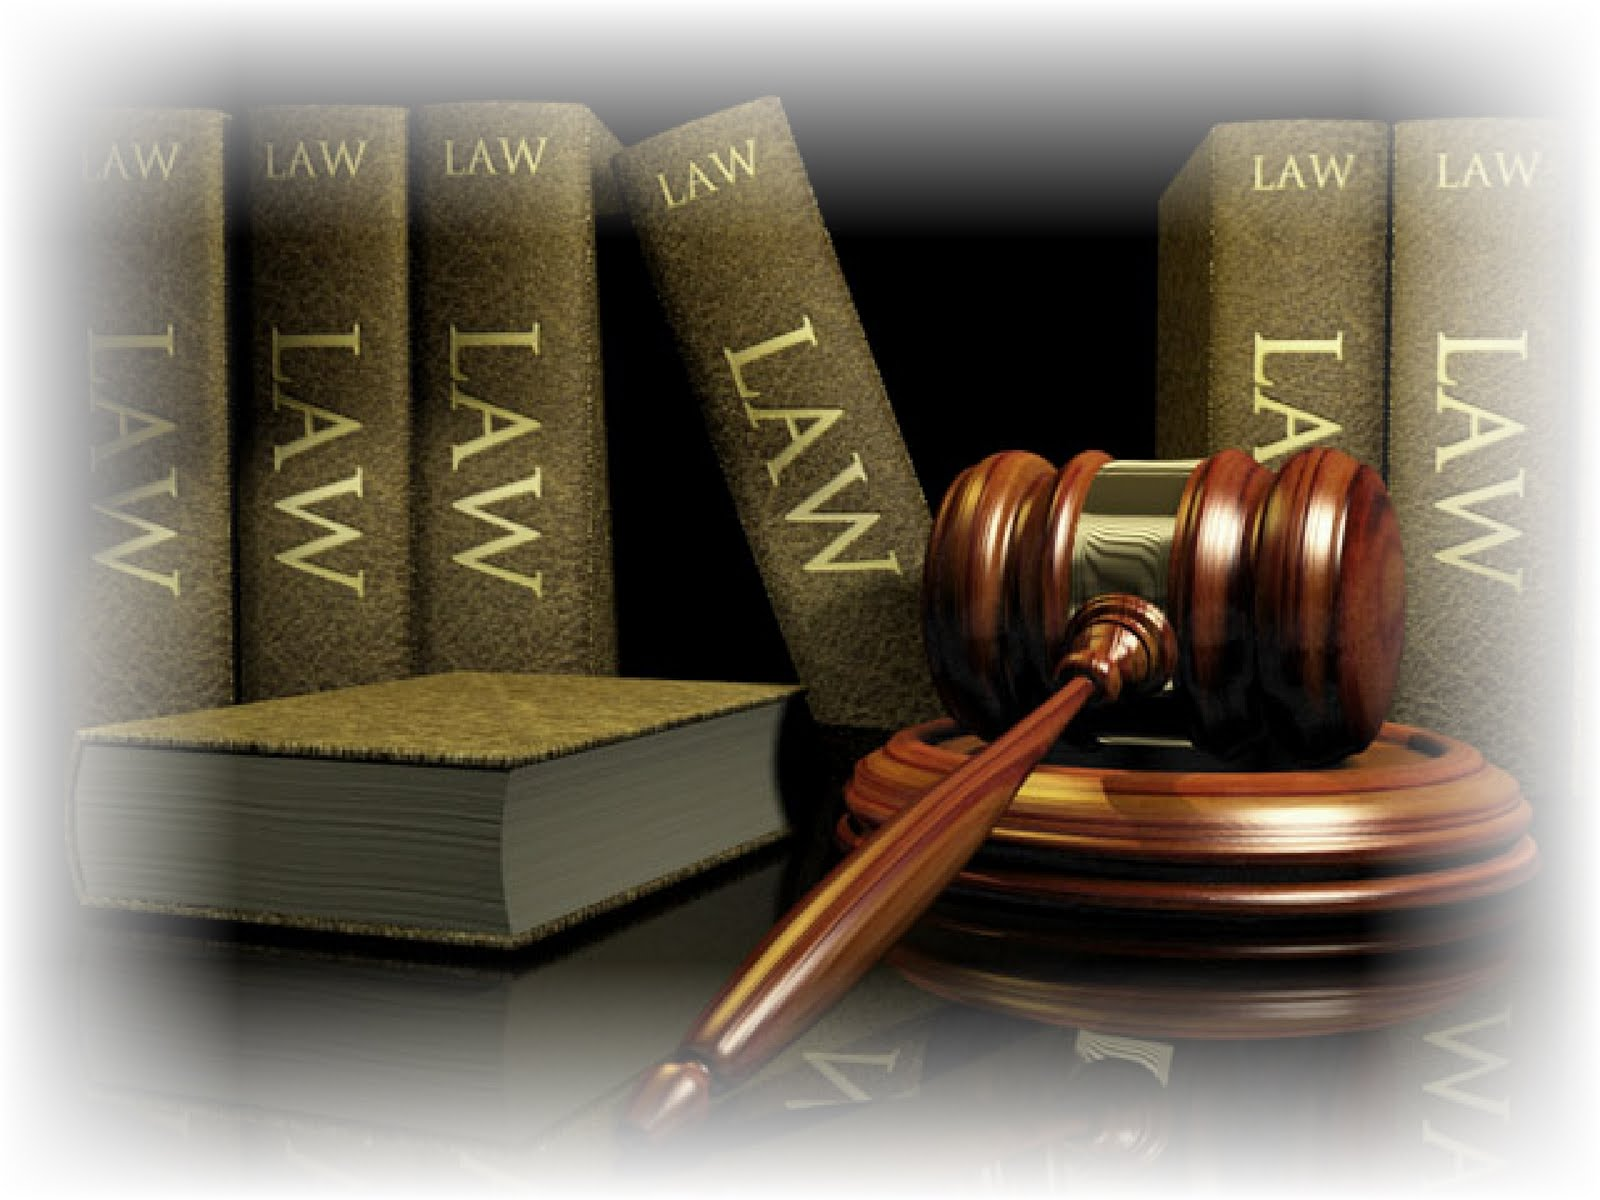 Clat course | JURIST LAW ACADEMY | Clat course in Chandigarh, Best Clat course in Chandigarh, Top Clat course in Chandigarh  - GL11440